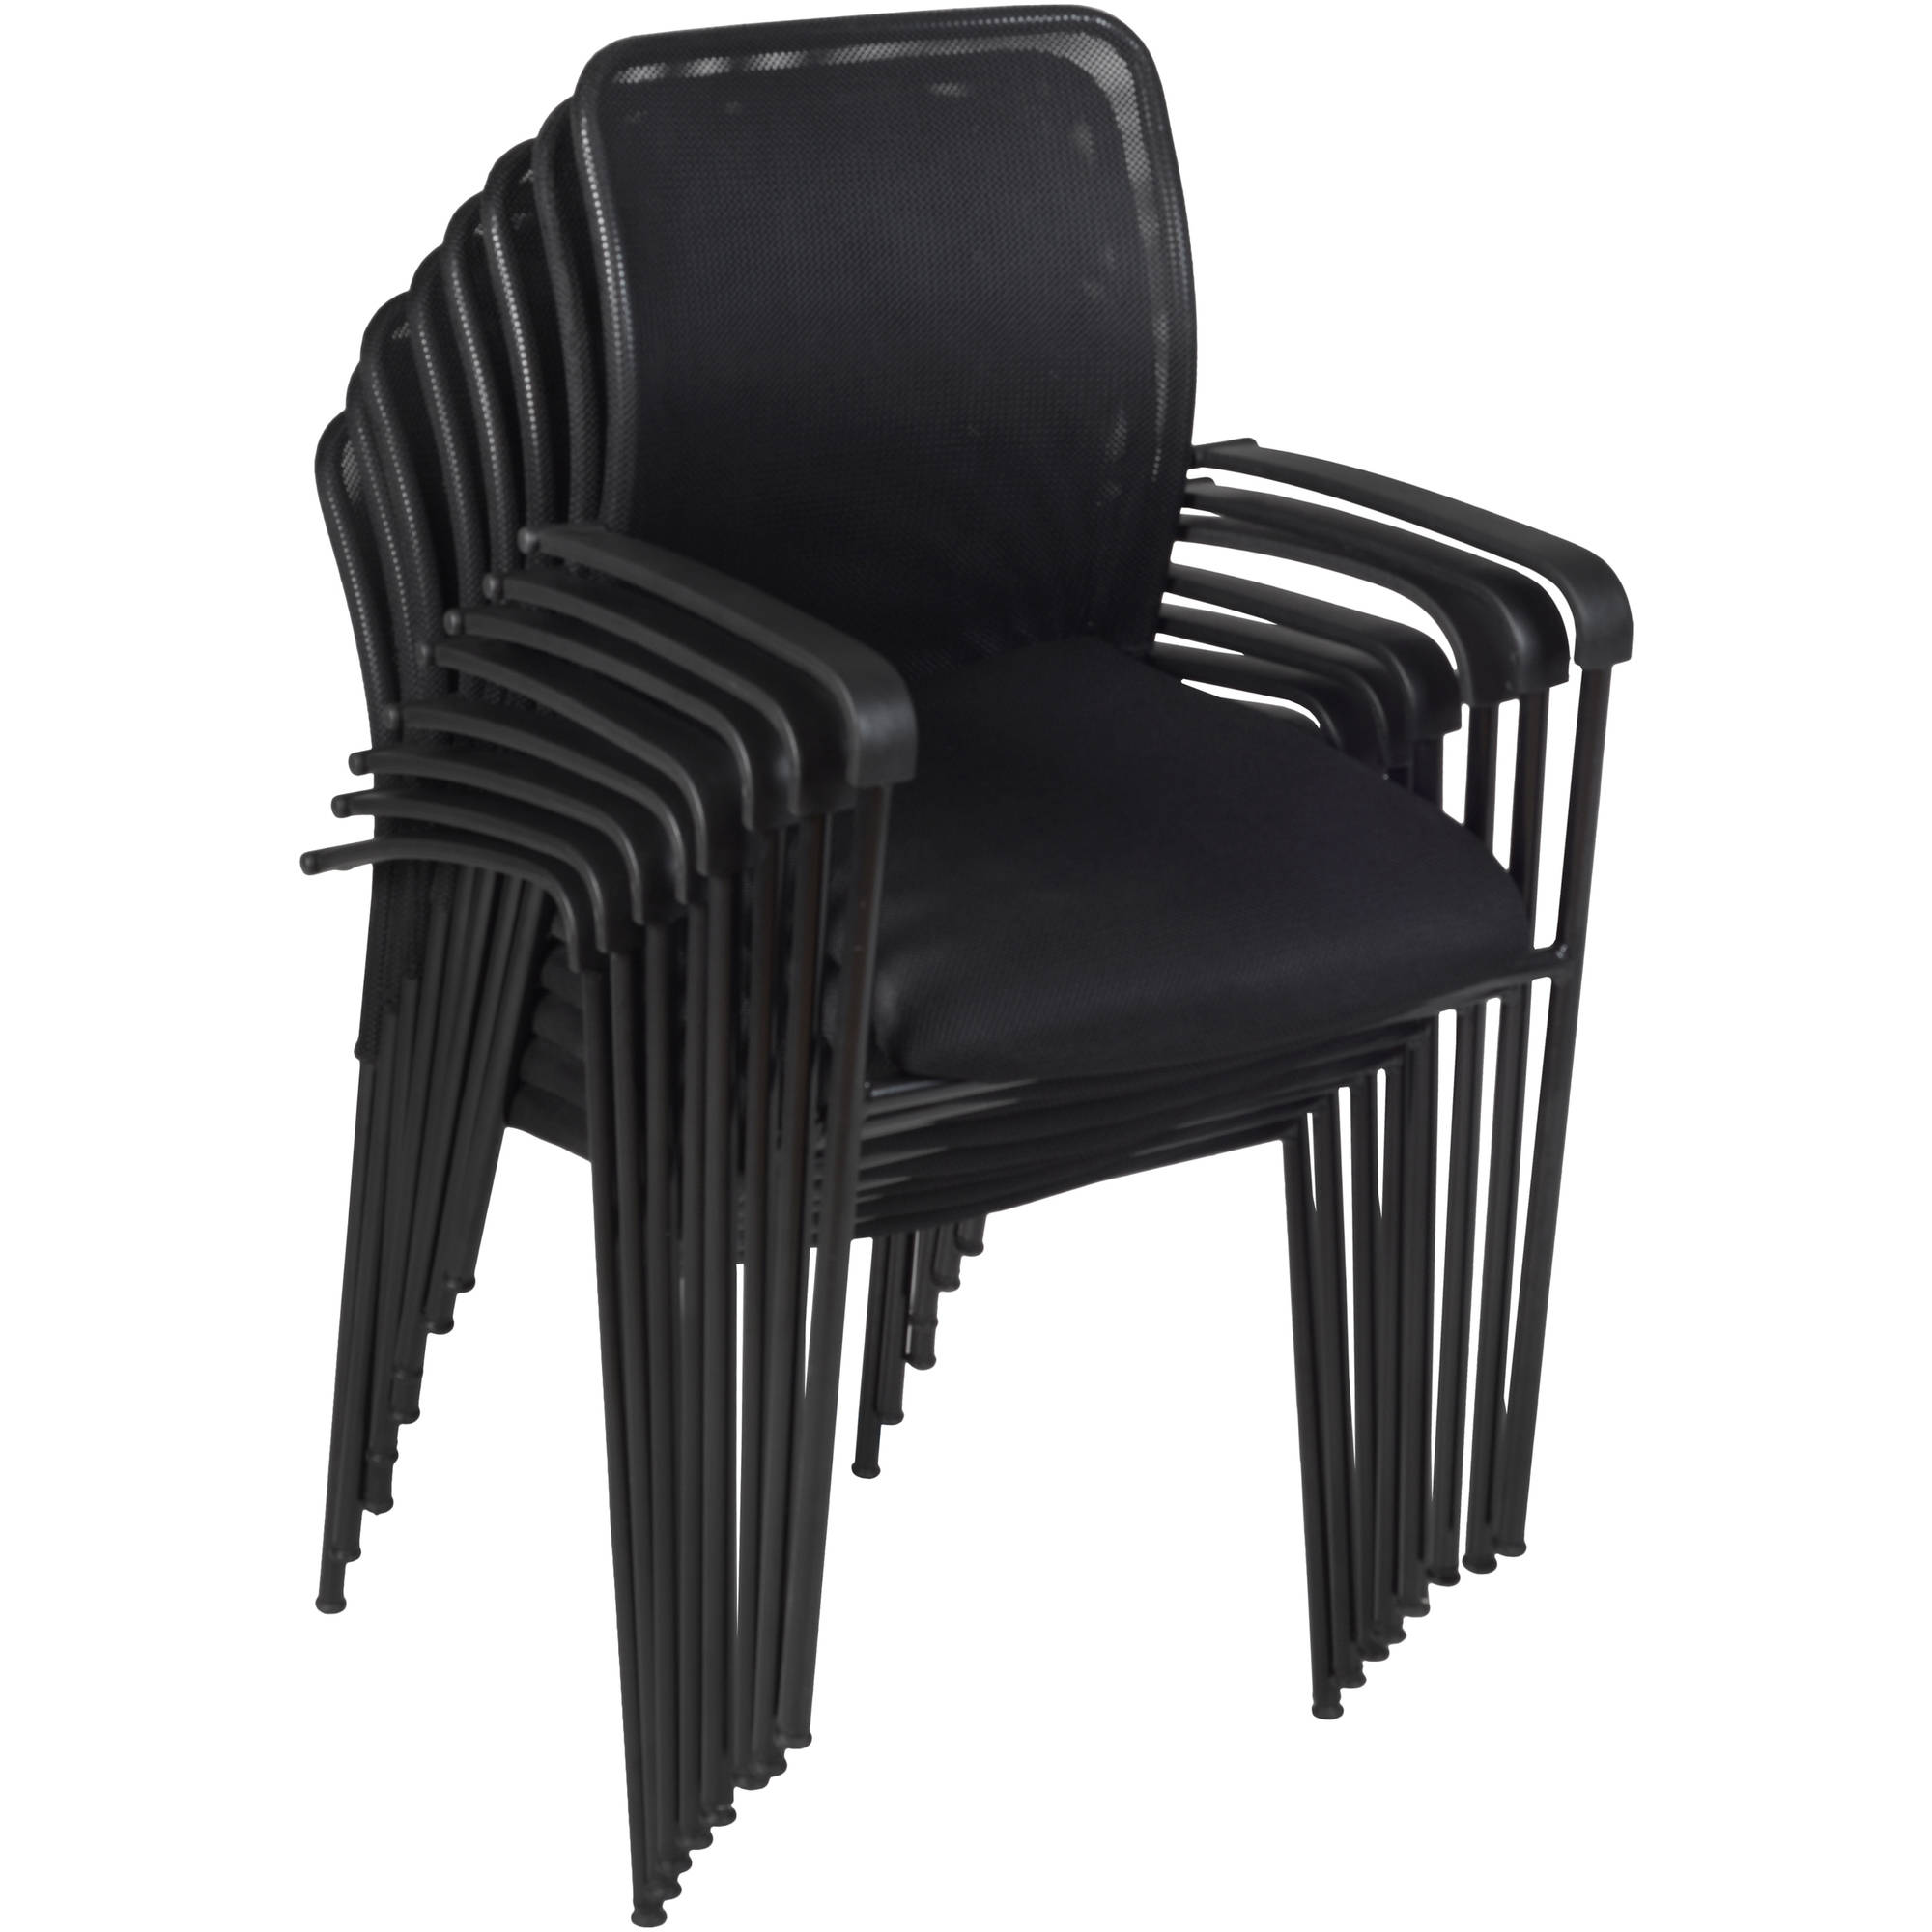 Regency Mario Stack Chairs, 8pk